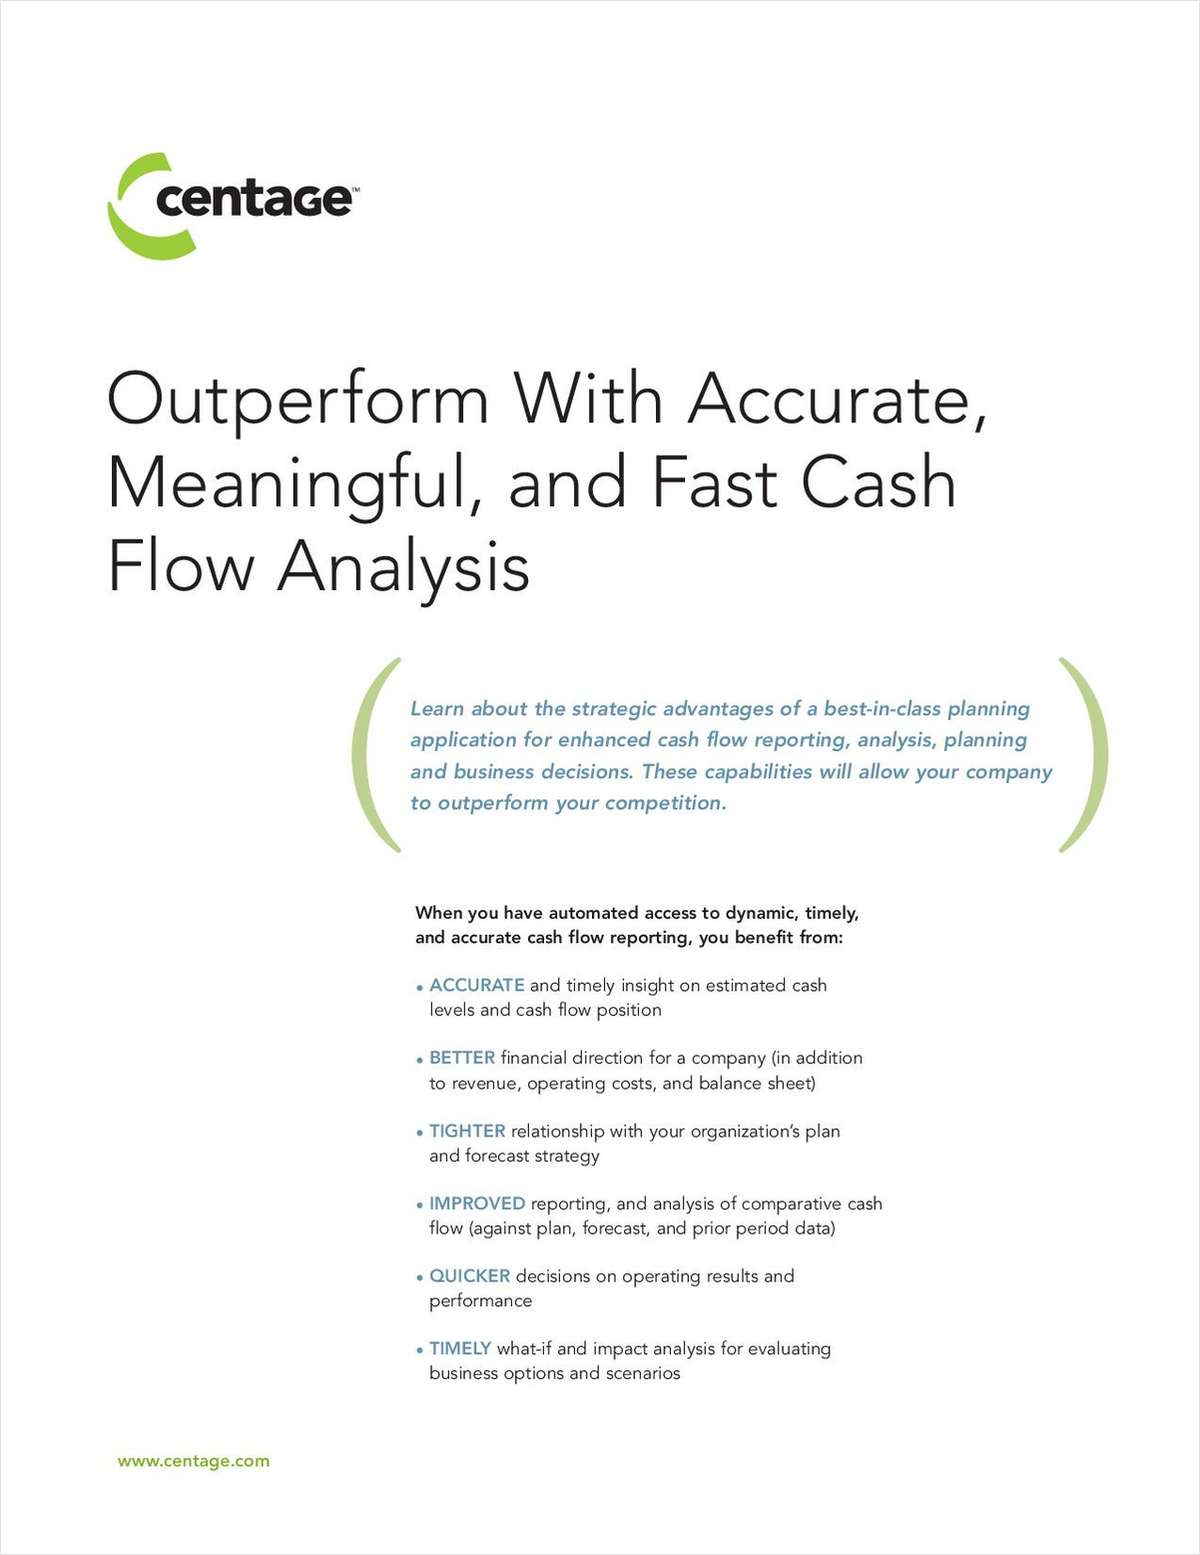 Outperform With Accurate, Meaningful, and Fast Cash Flow Analysis